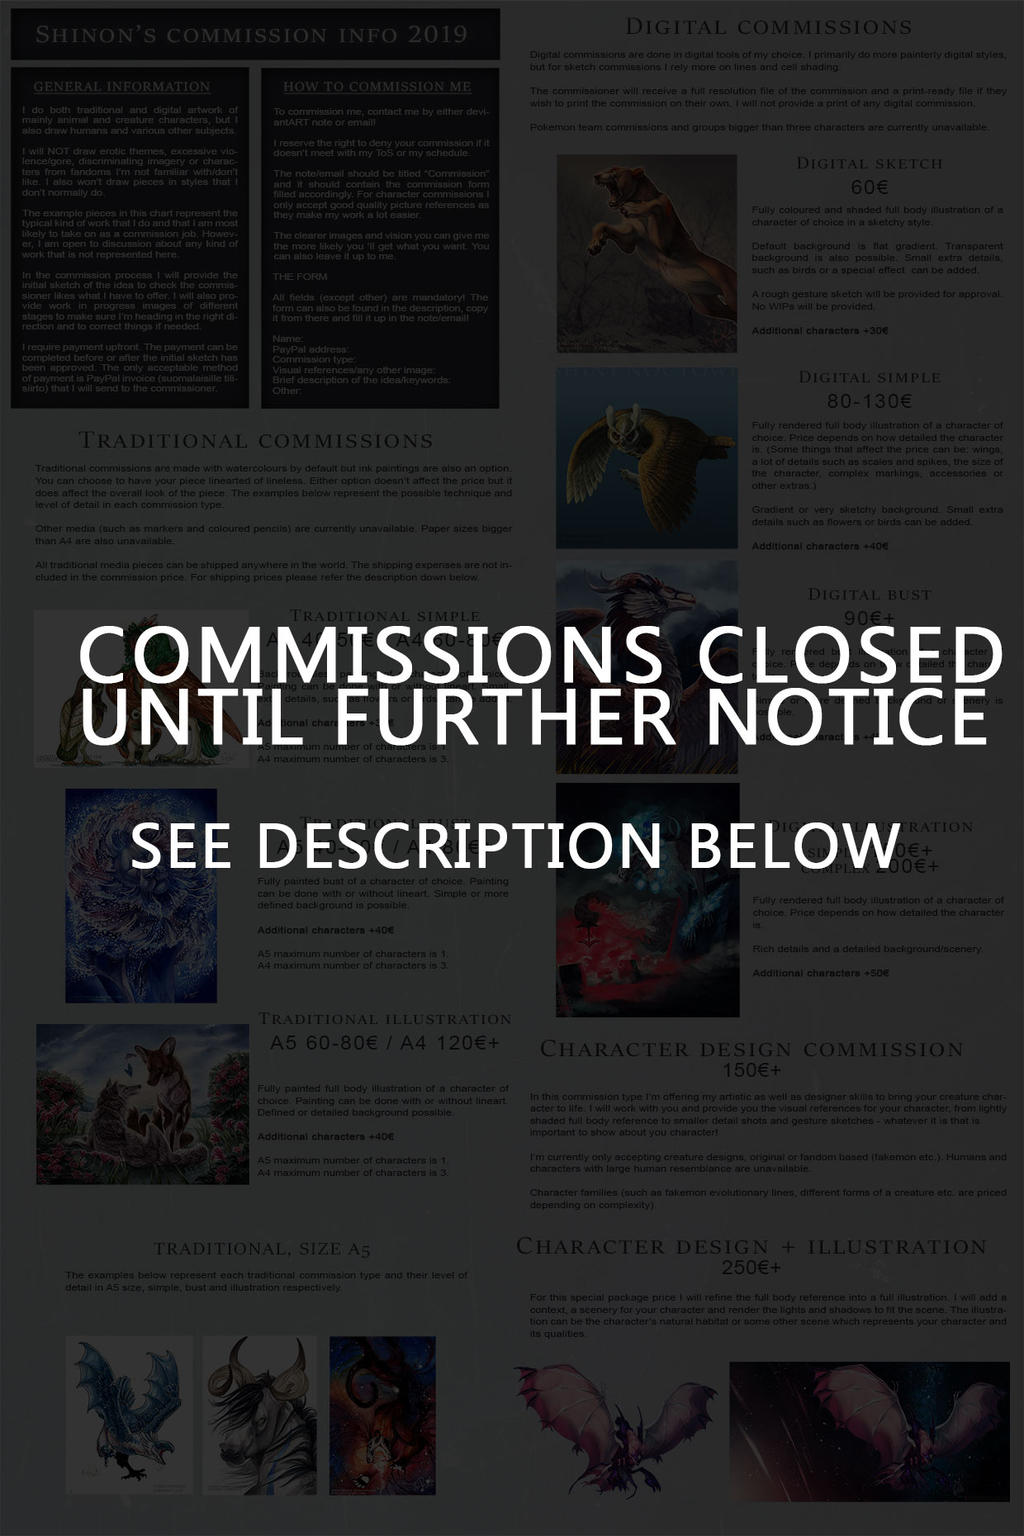 COMMISSIONS CLOSED UNTIL FURTHER NOTICE